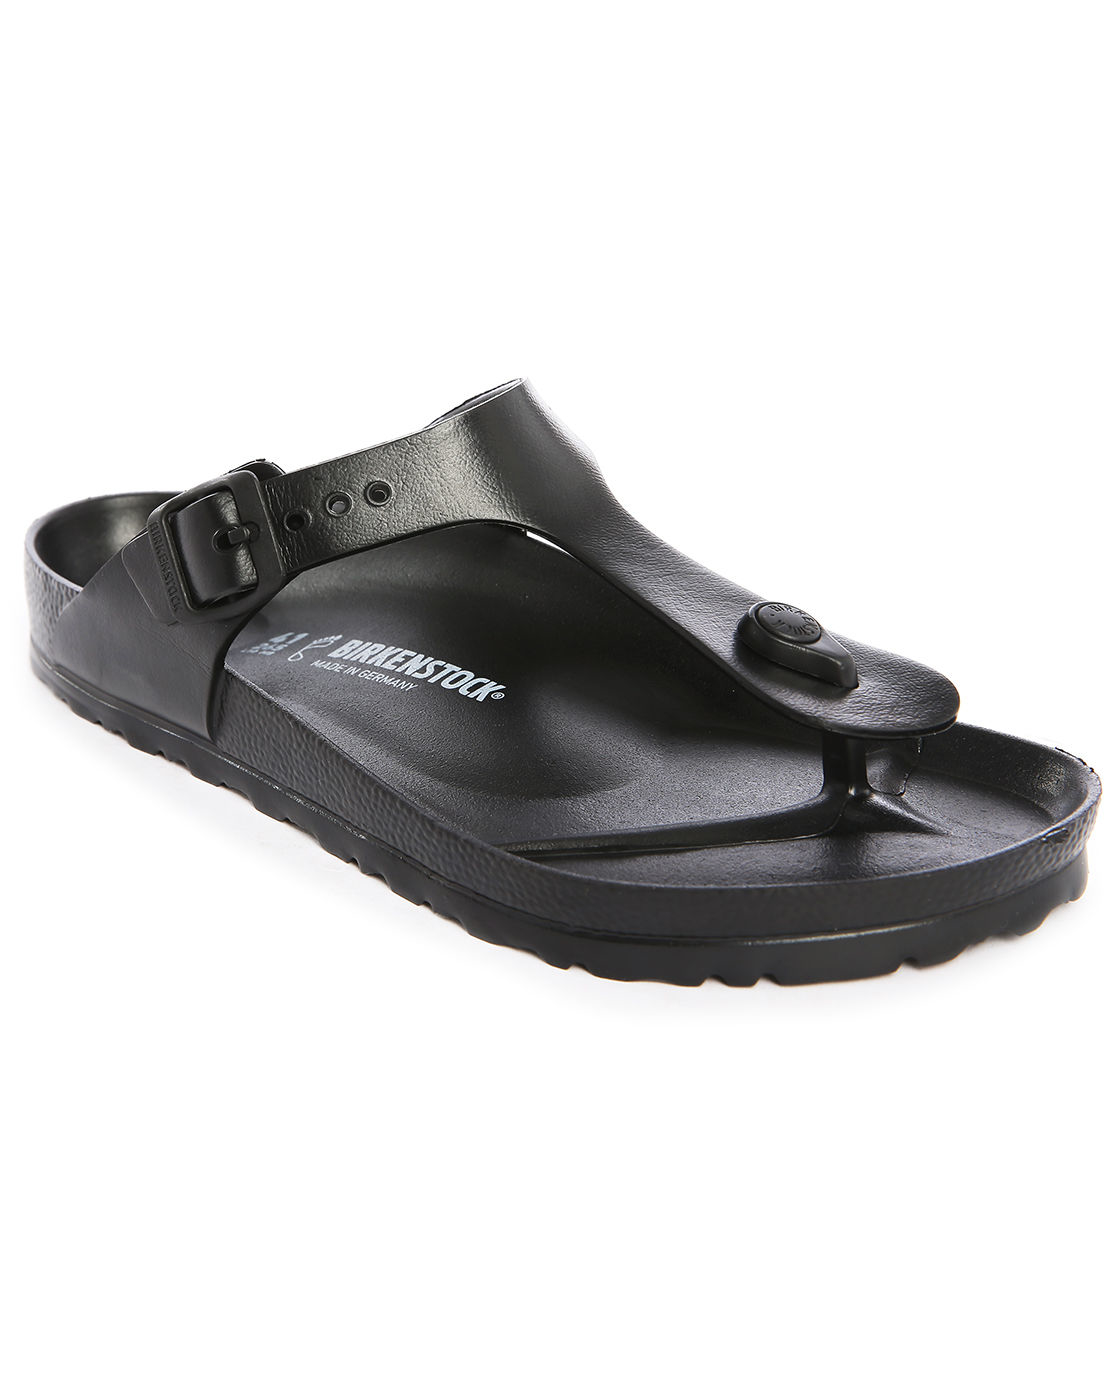 birkenstock eva gizeh black flip flops in black for men lyst. Black Bedroom Furniture Sets. Home Design Ideas